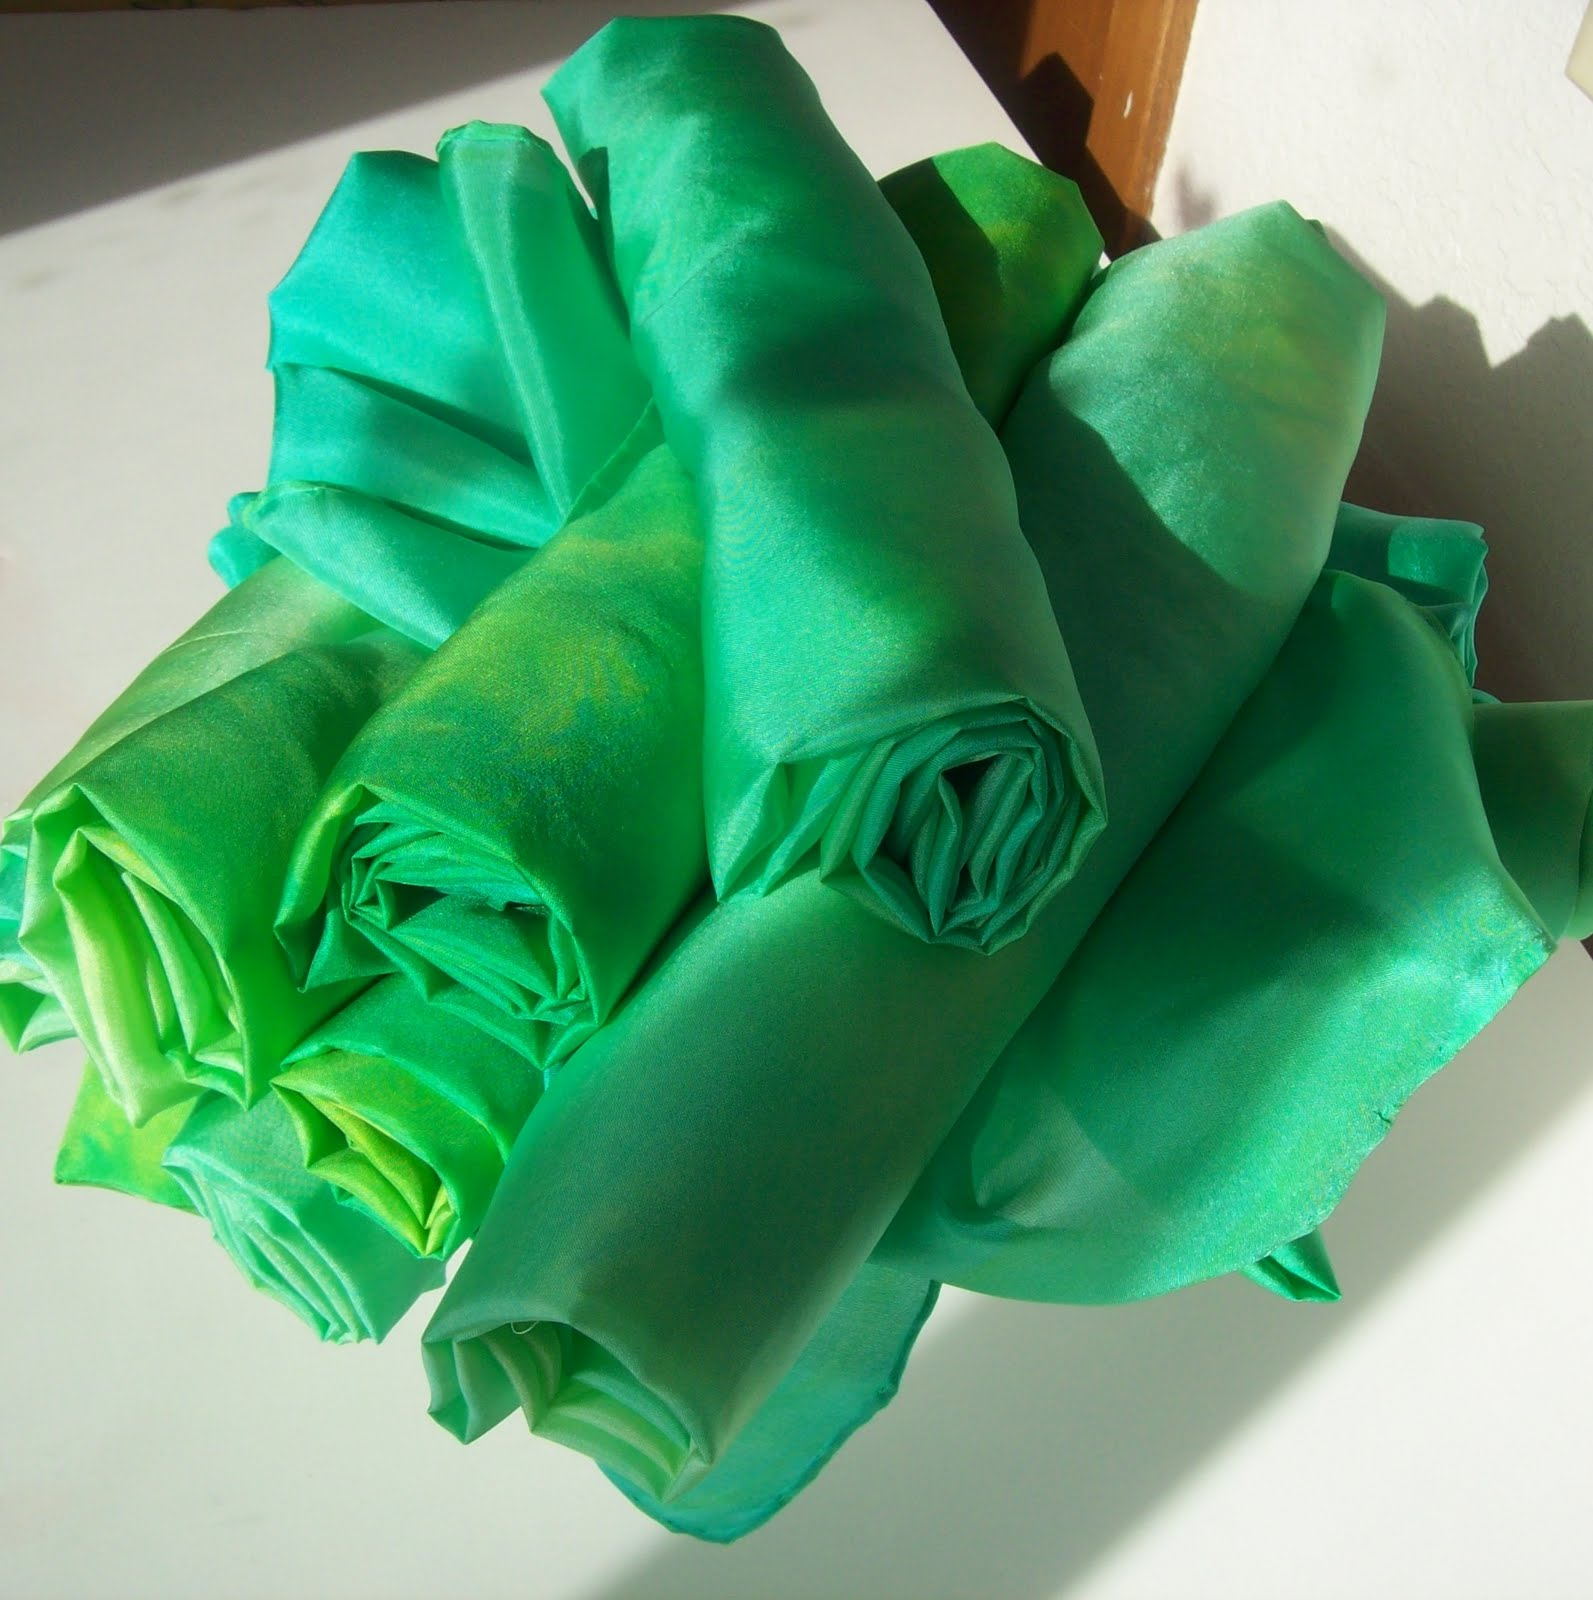 Homemade playsilks made with food dye health home for What do we use silk for